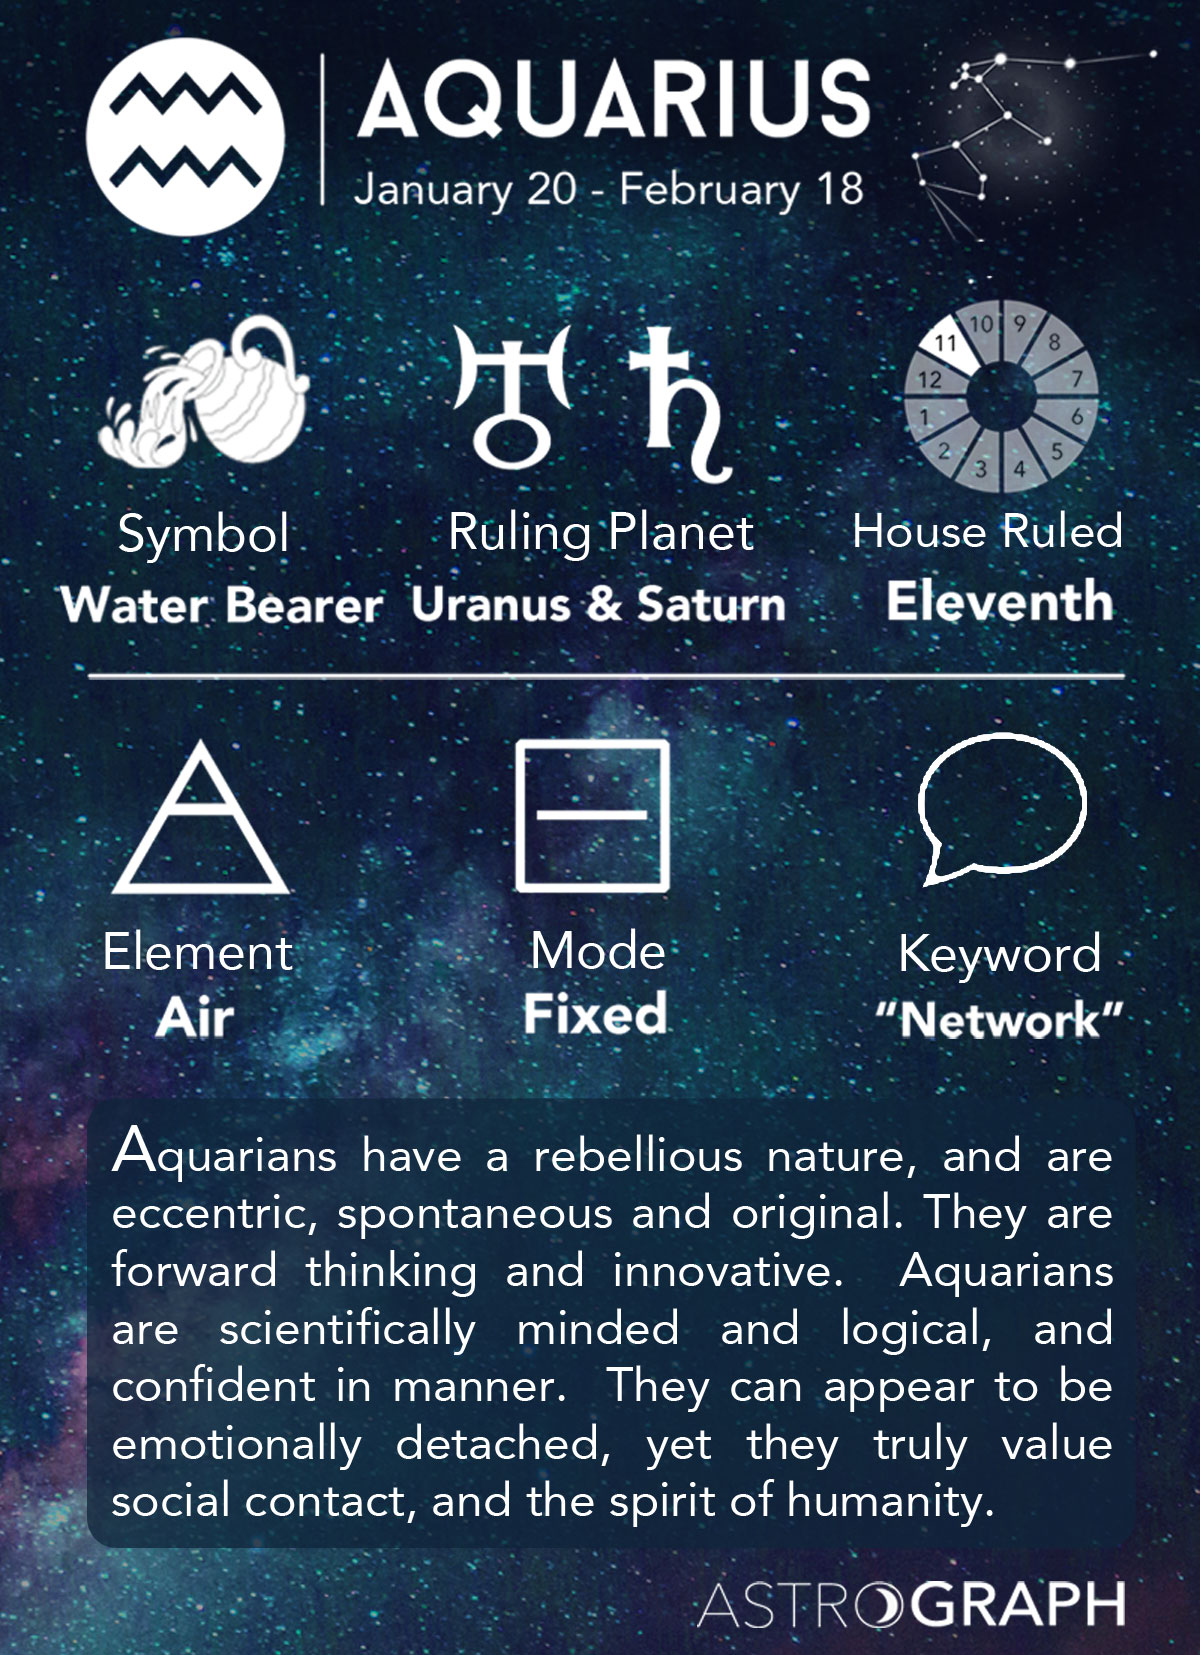 Key Aquarius Traits